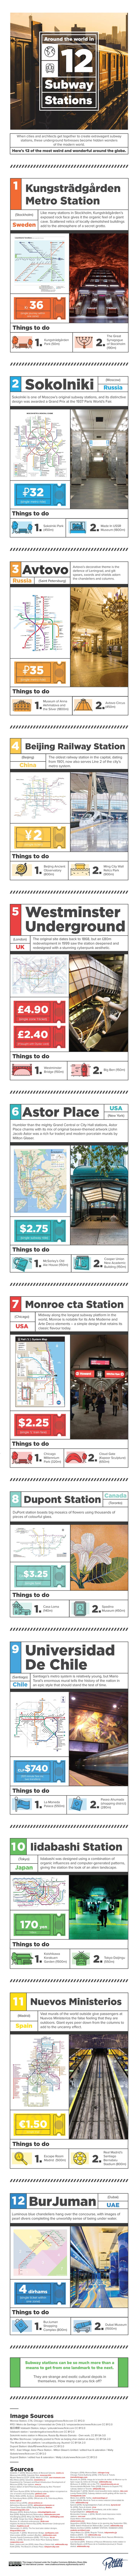 World's Best Subway Stations - Infographic